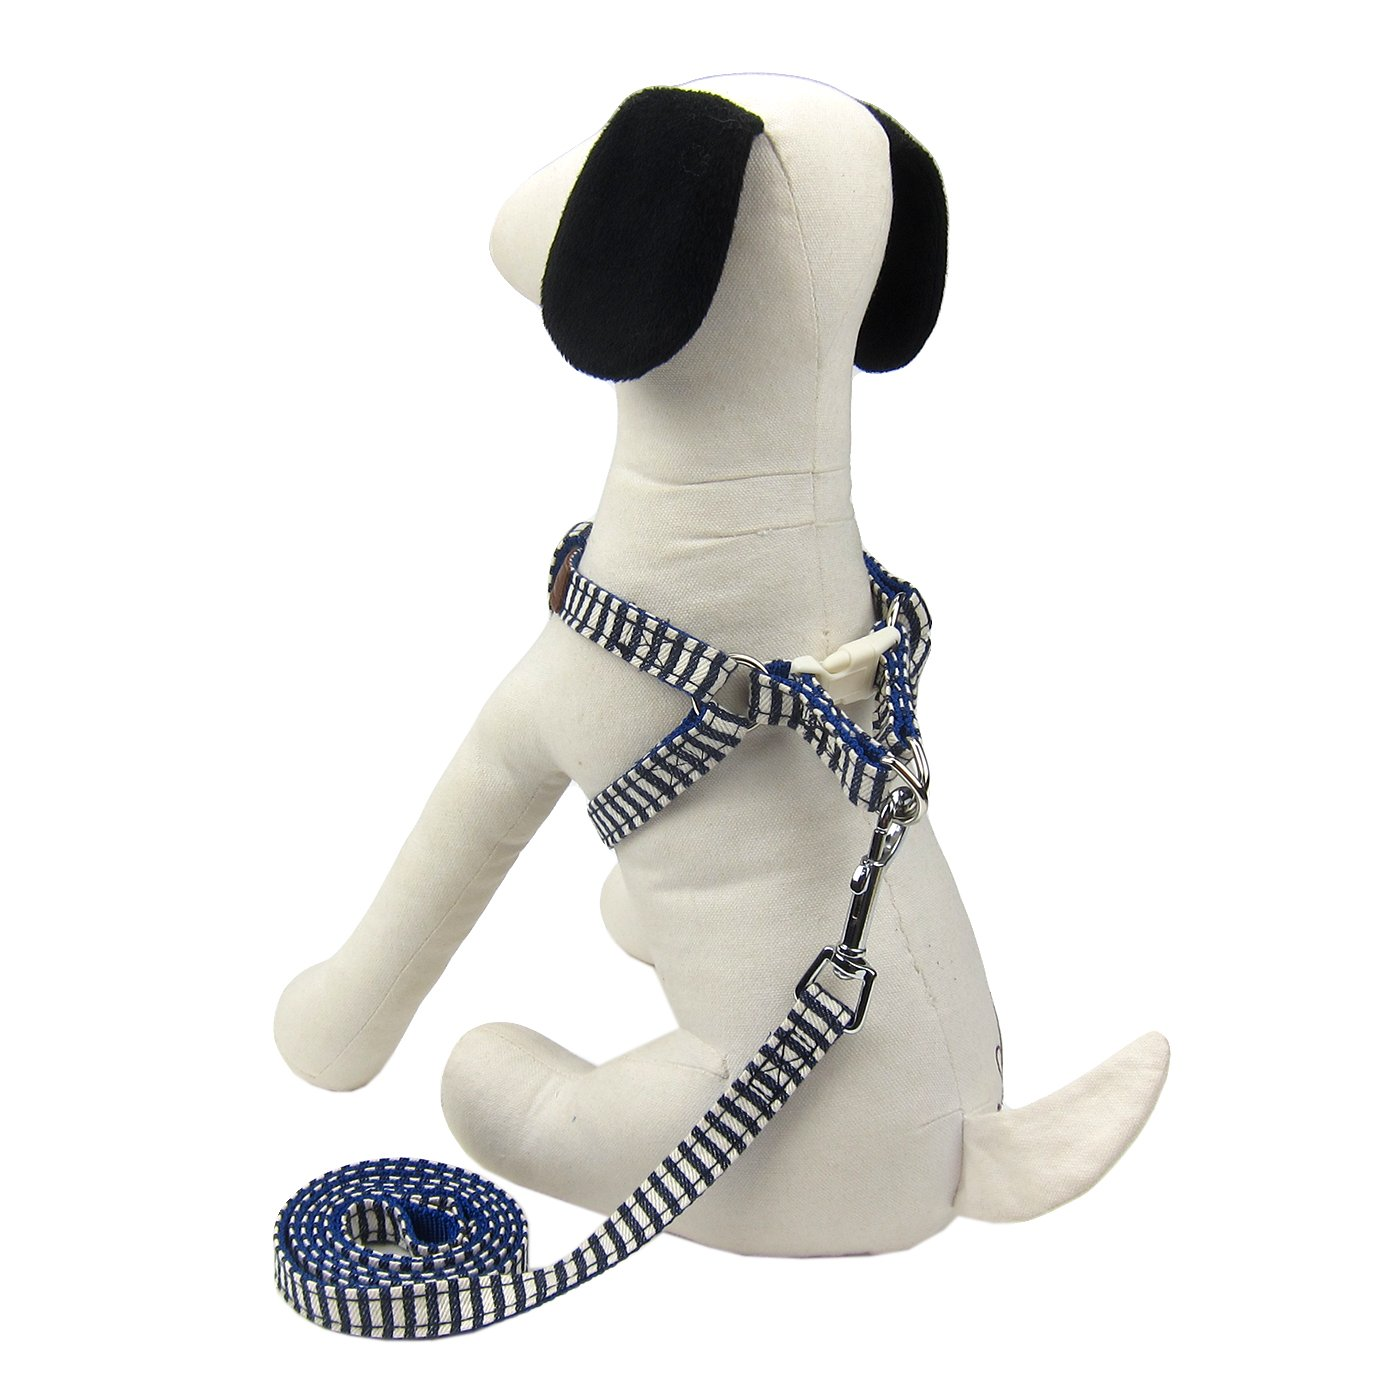 bluee Stripe Small bluee Stripe Small Alfie Pet Harvest Harness and Leash Set color  bluee Stripe, Size  Small